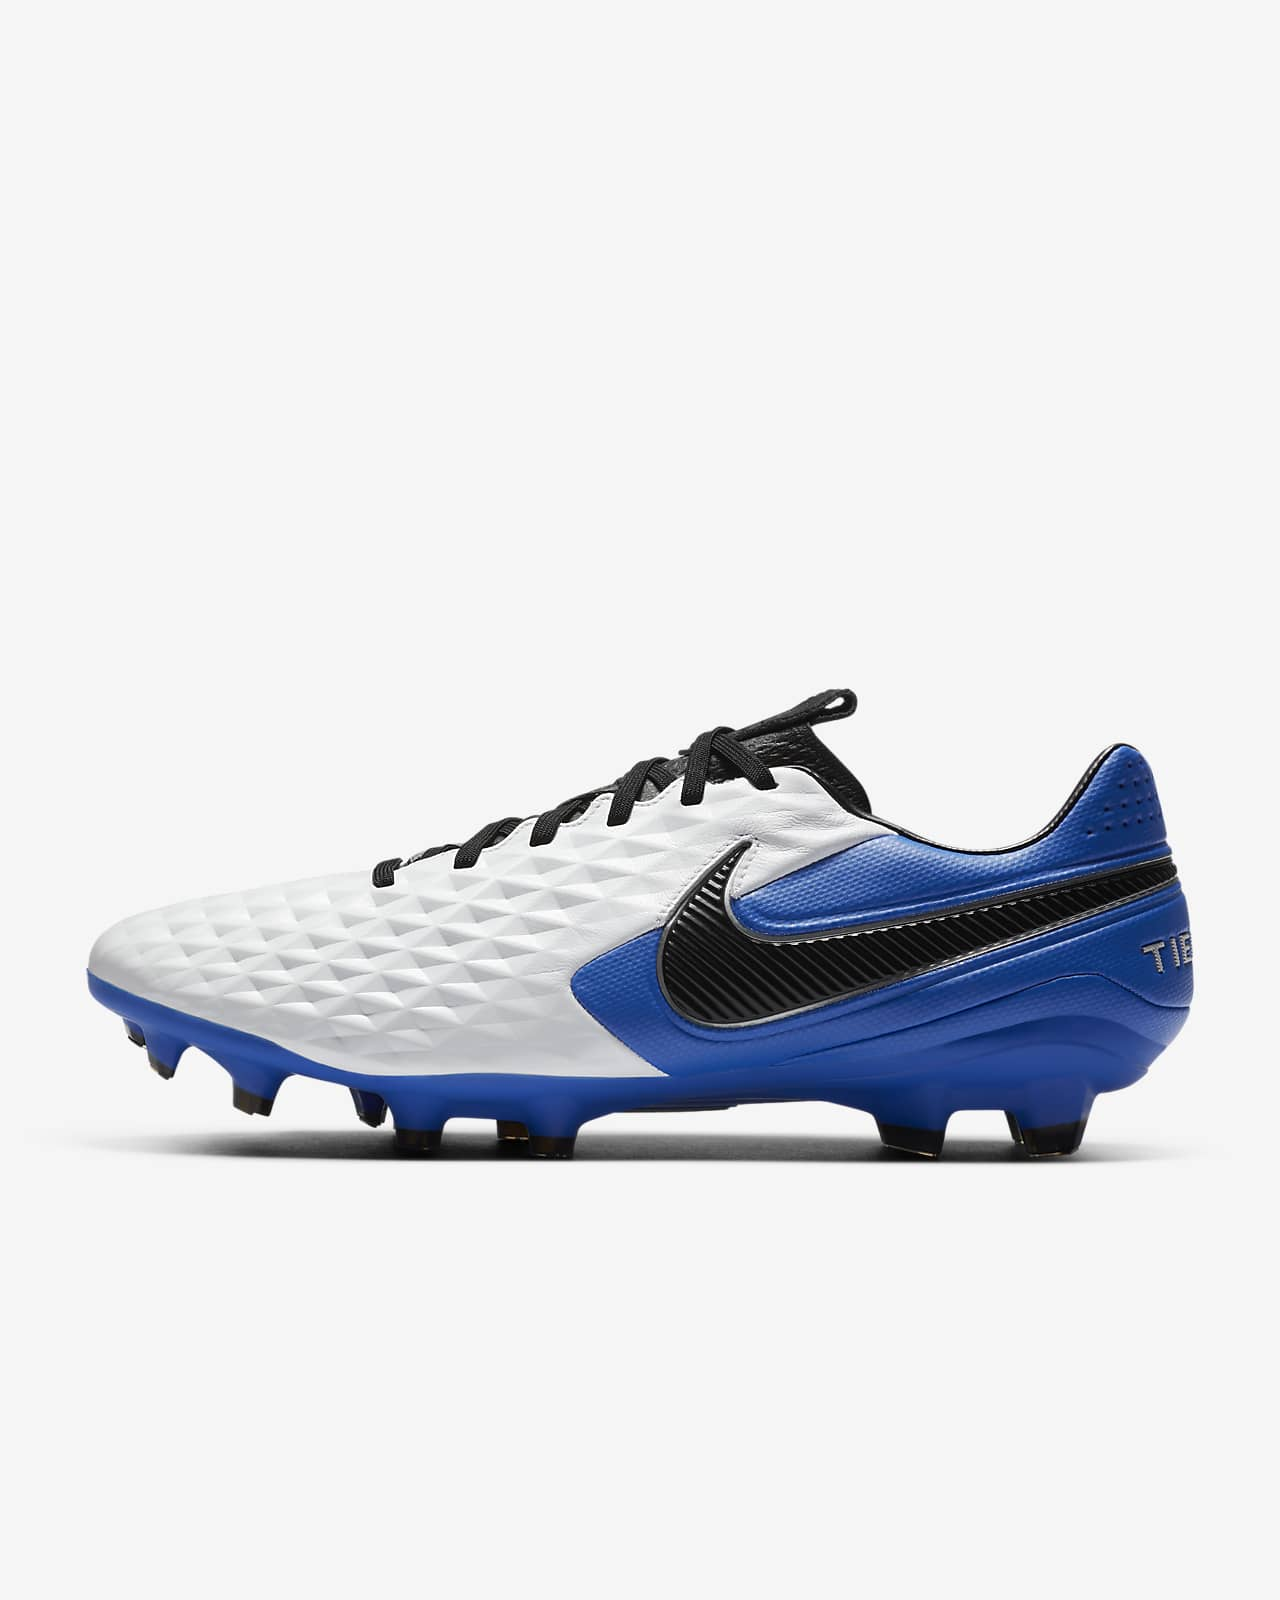 Portal medallista capa  Nike Tiempo Legend 8 Pro FG Firm-Ground Soccer Cleat. Nike.com